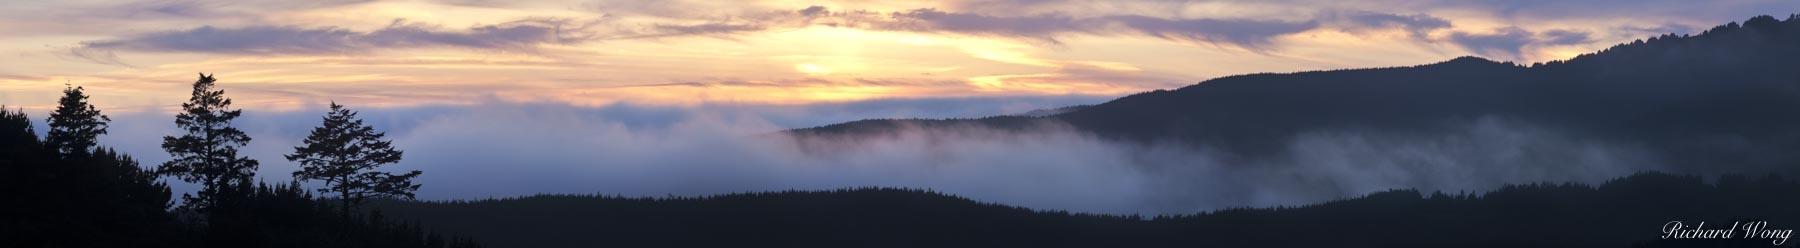 Summer Fog Rolling in Over Ridge at Sunset, Point Reyes National Seashore, California, photo, photo